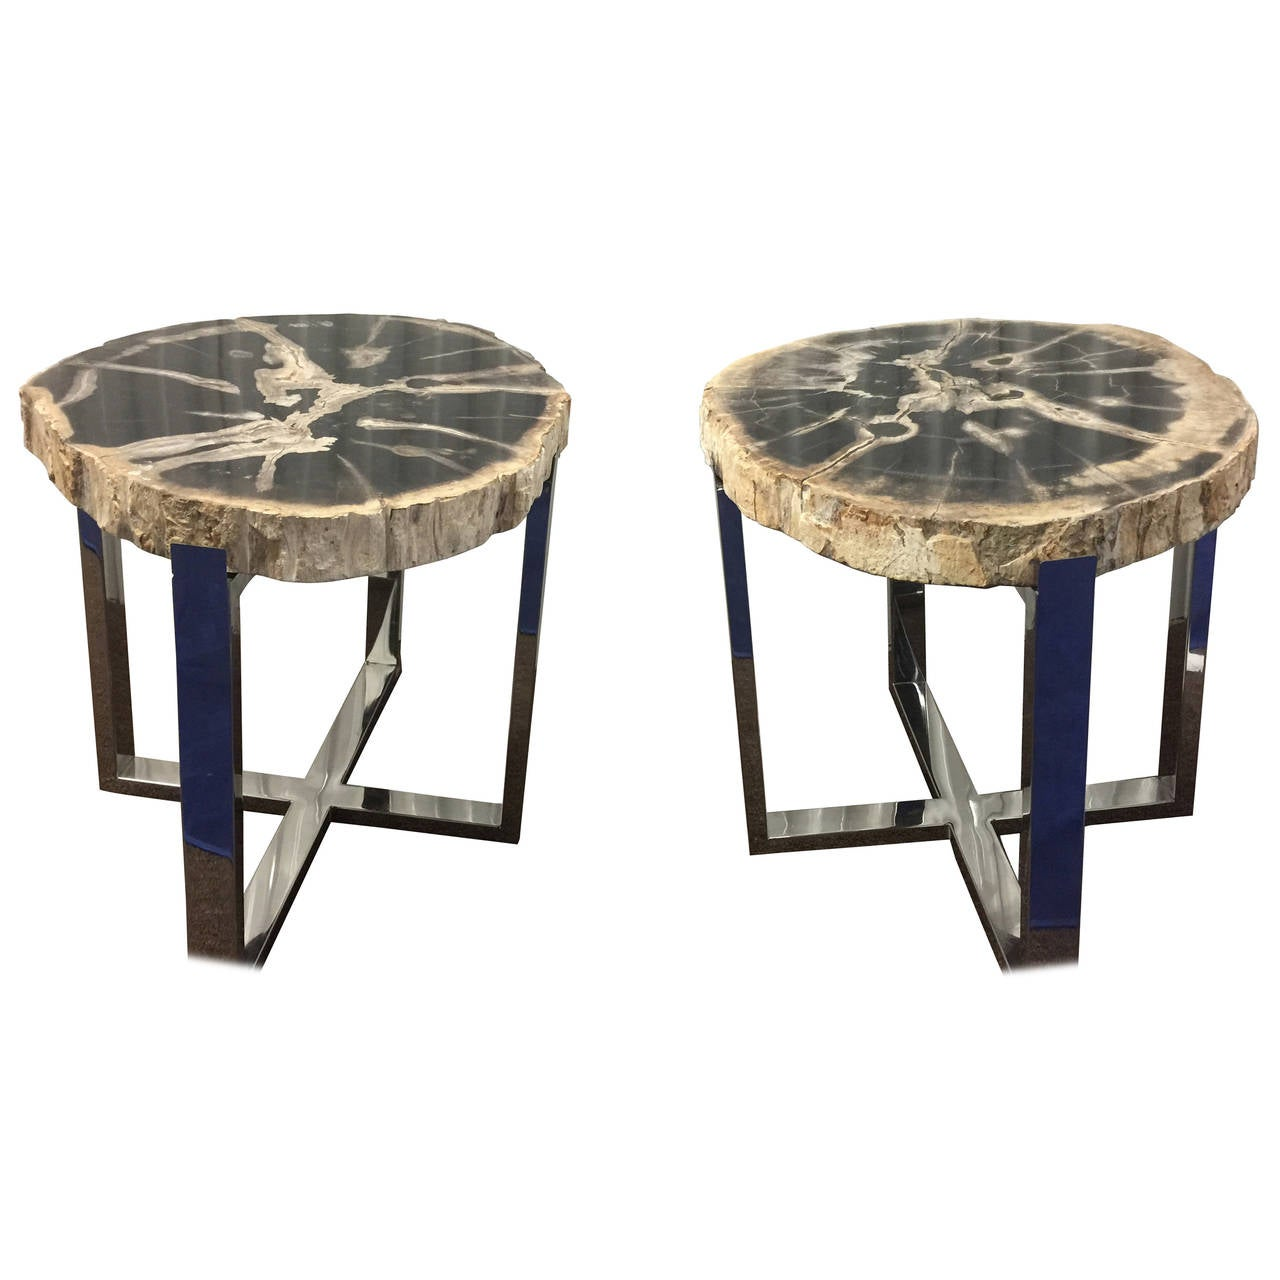 Organic Modern Style Pair Of Petrified Wood And Chrome End Or Side Tables At 1stdibs